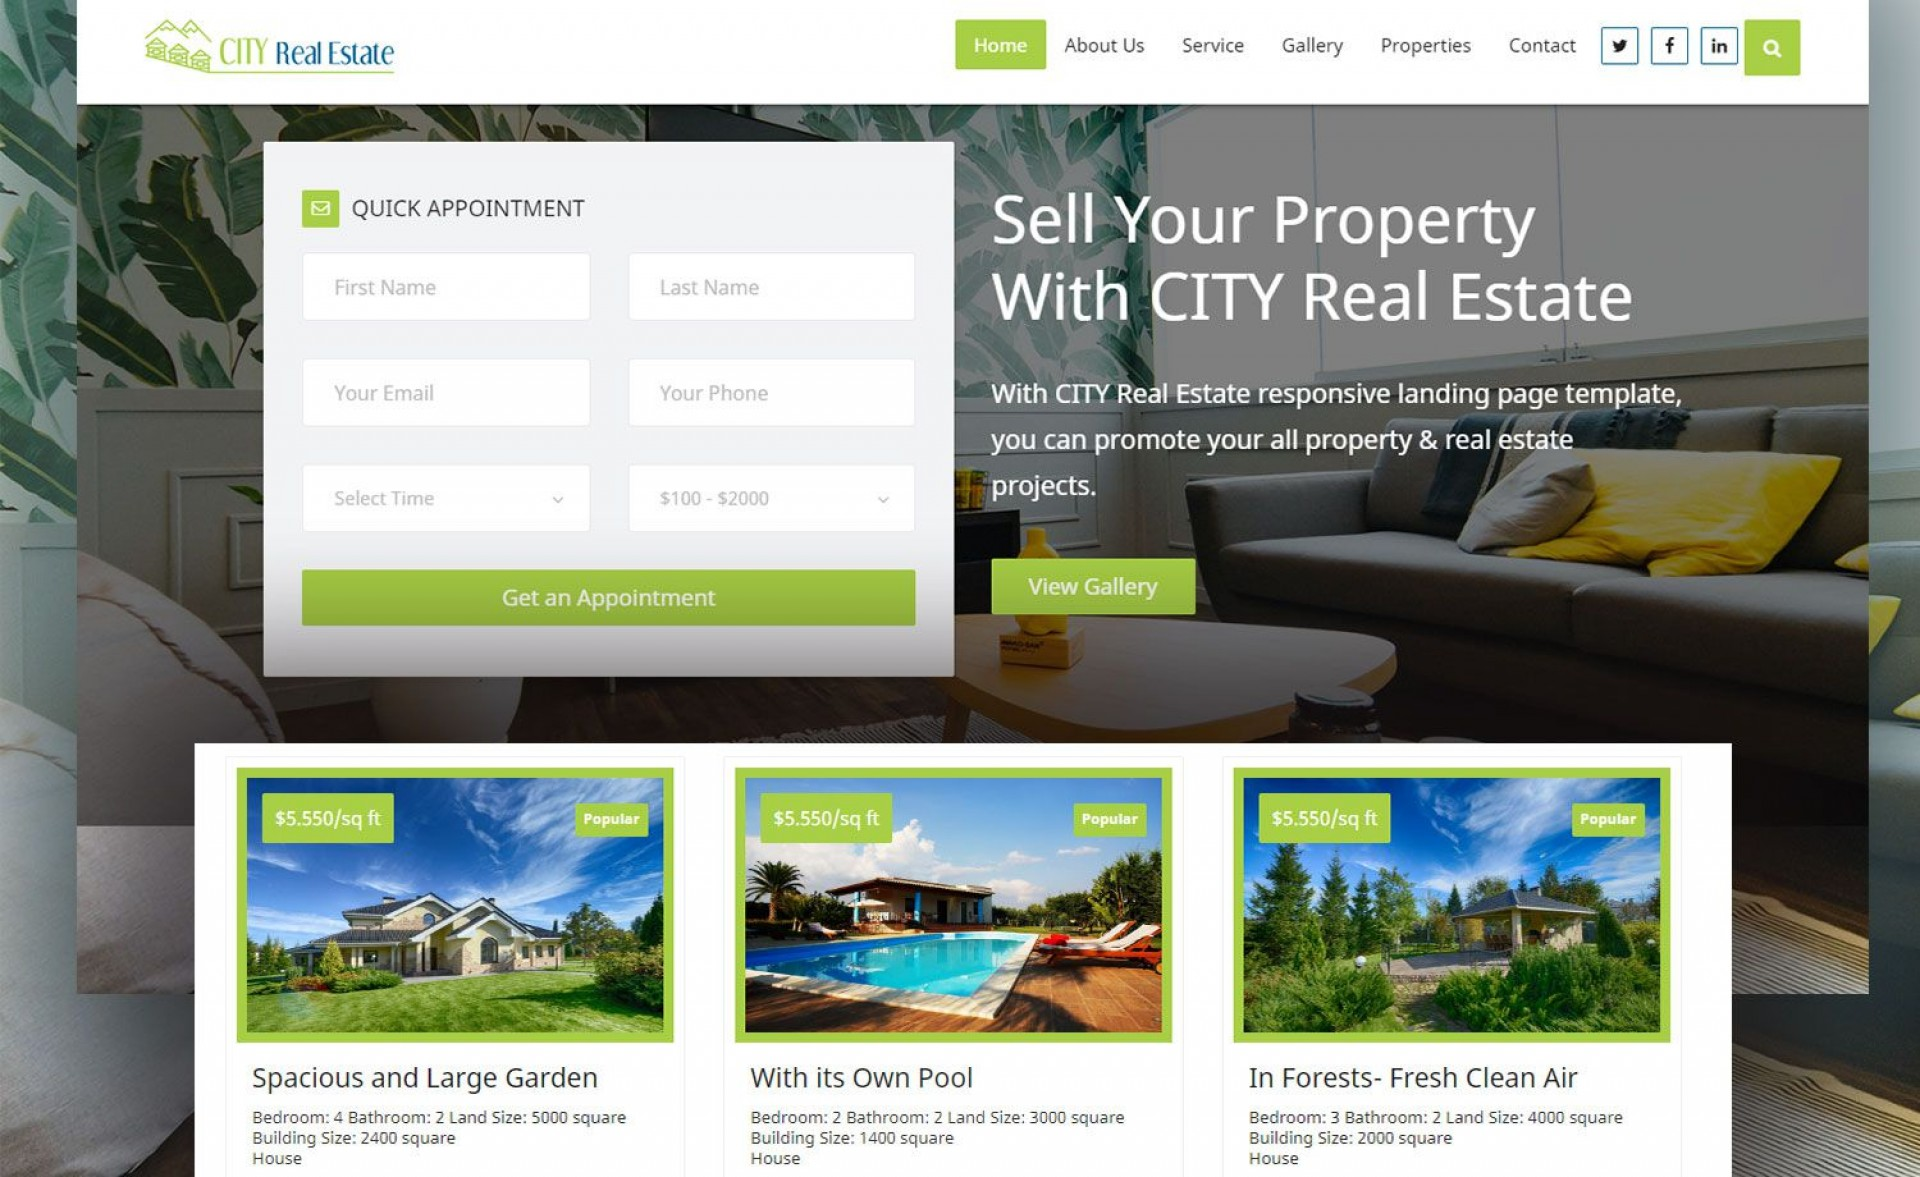 014 Top Real Estate Website Template Highest Quality  Templates Bootstrap Free Html5 Best Wordpres1920